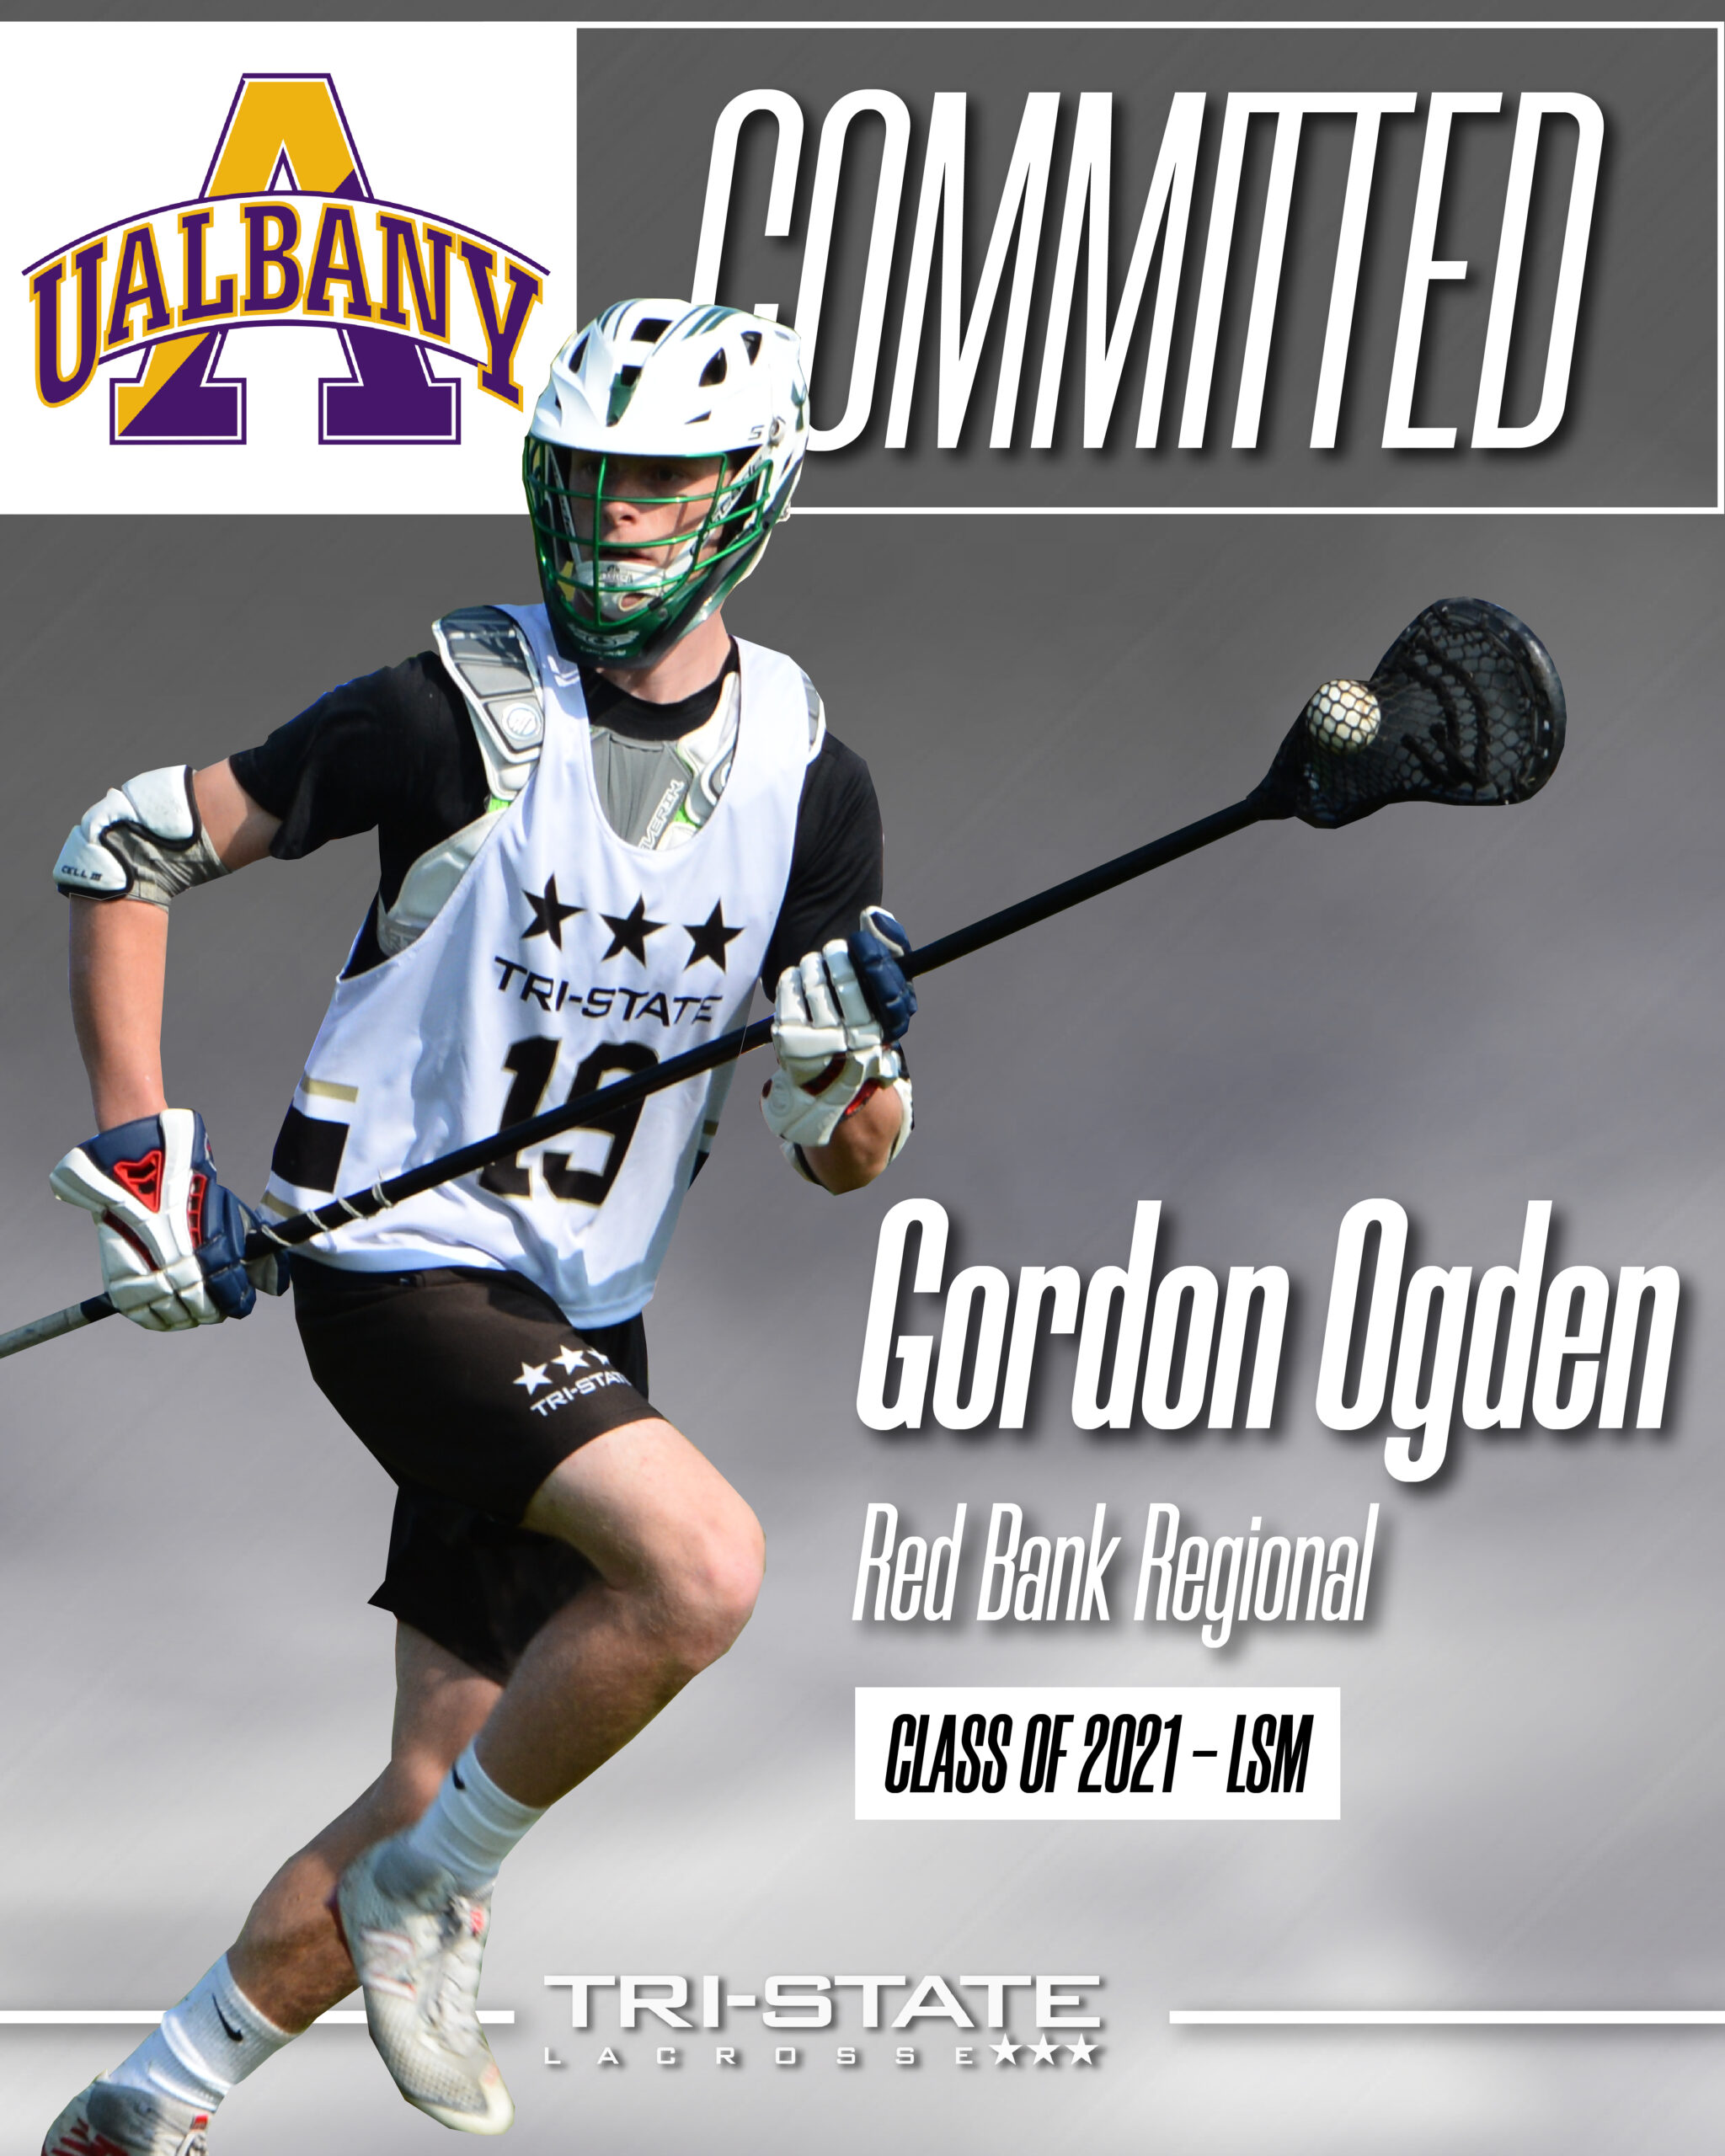 Gordon Ogden - Red Bank Regional, Albany